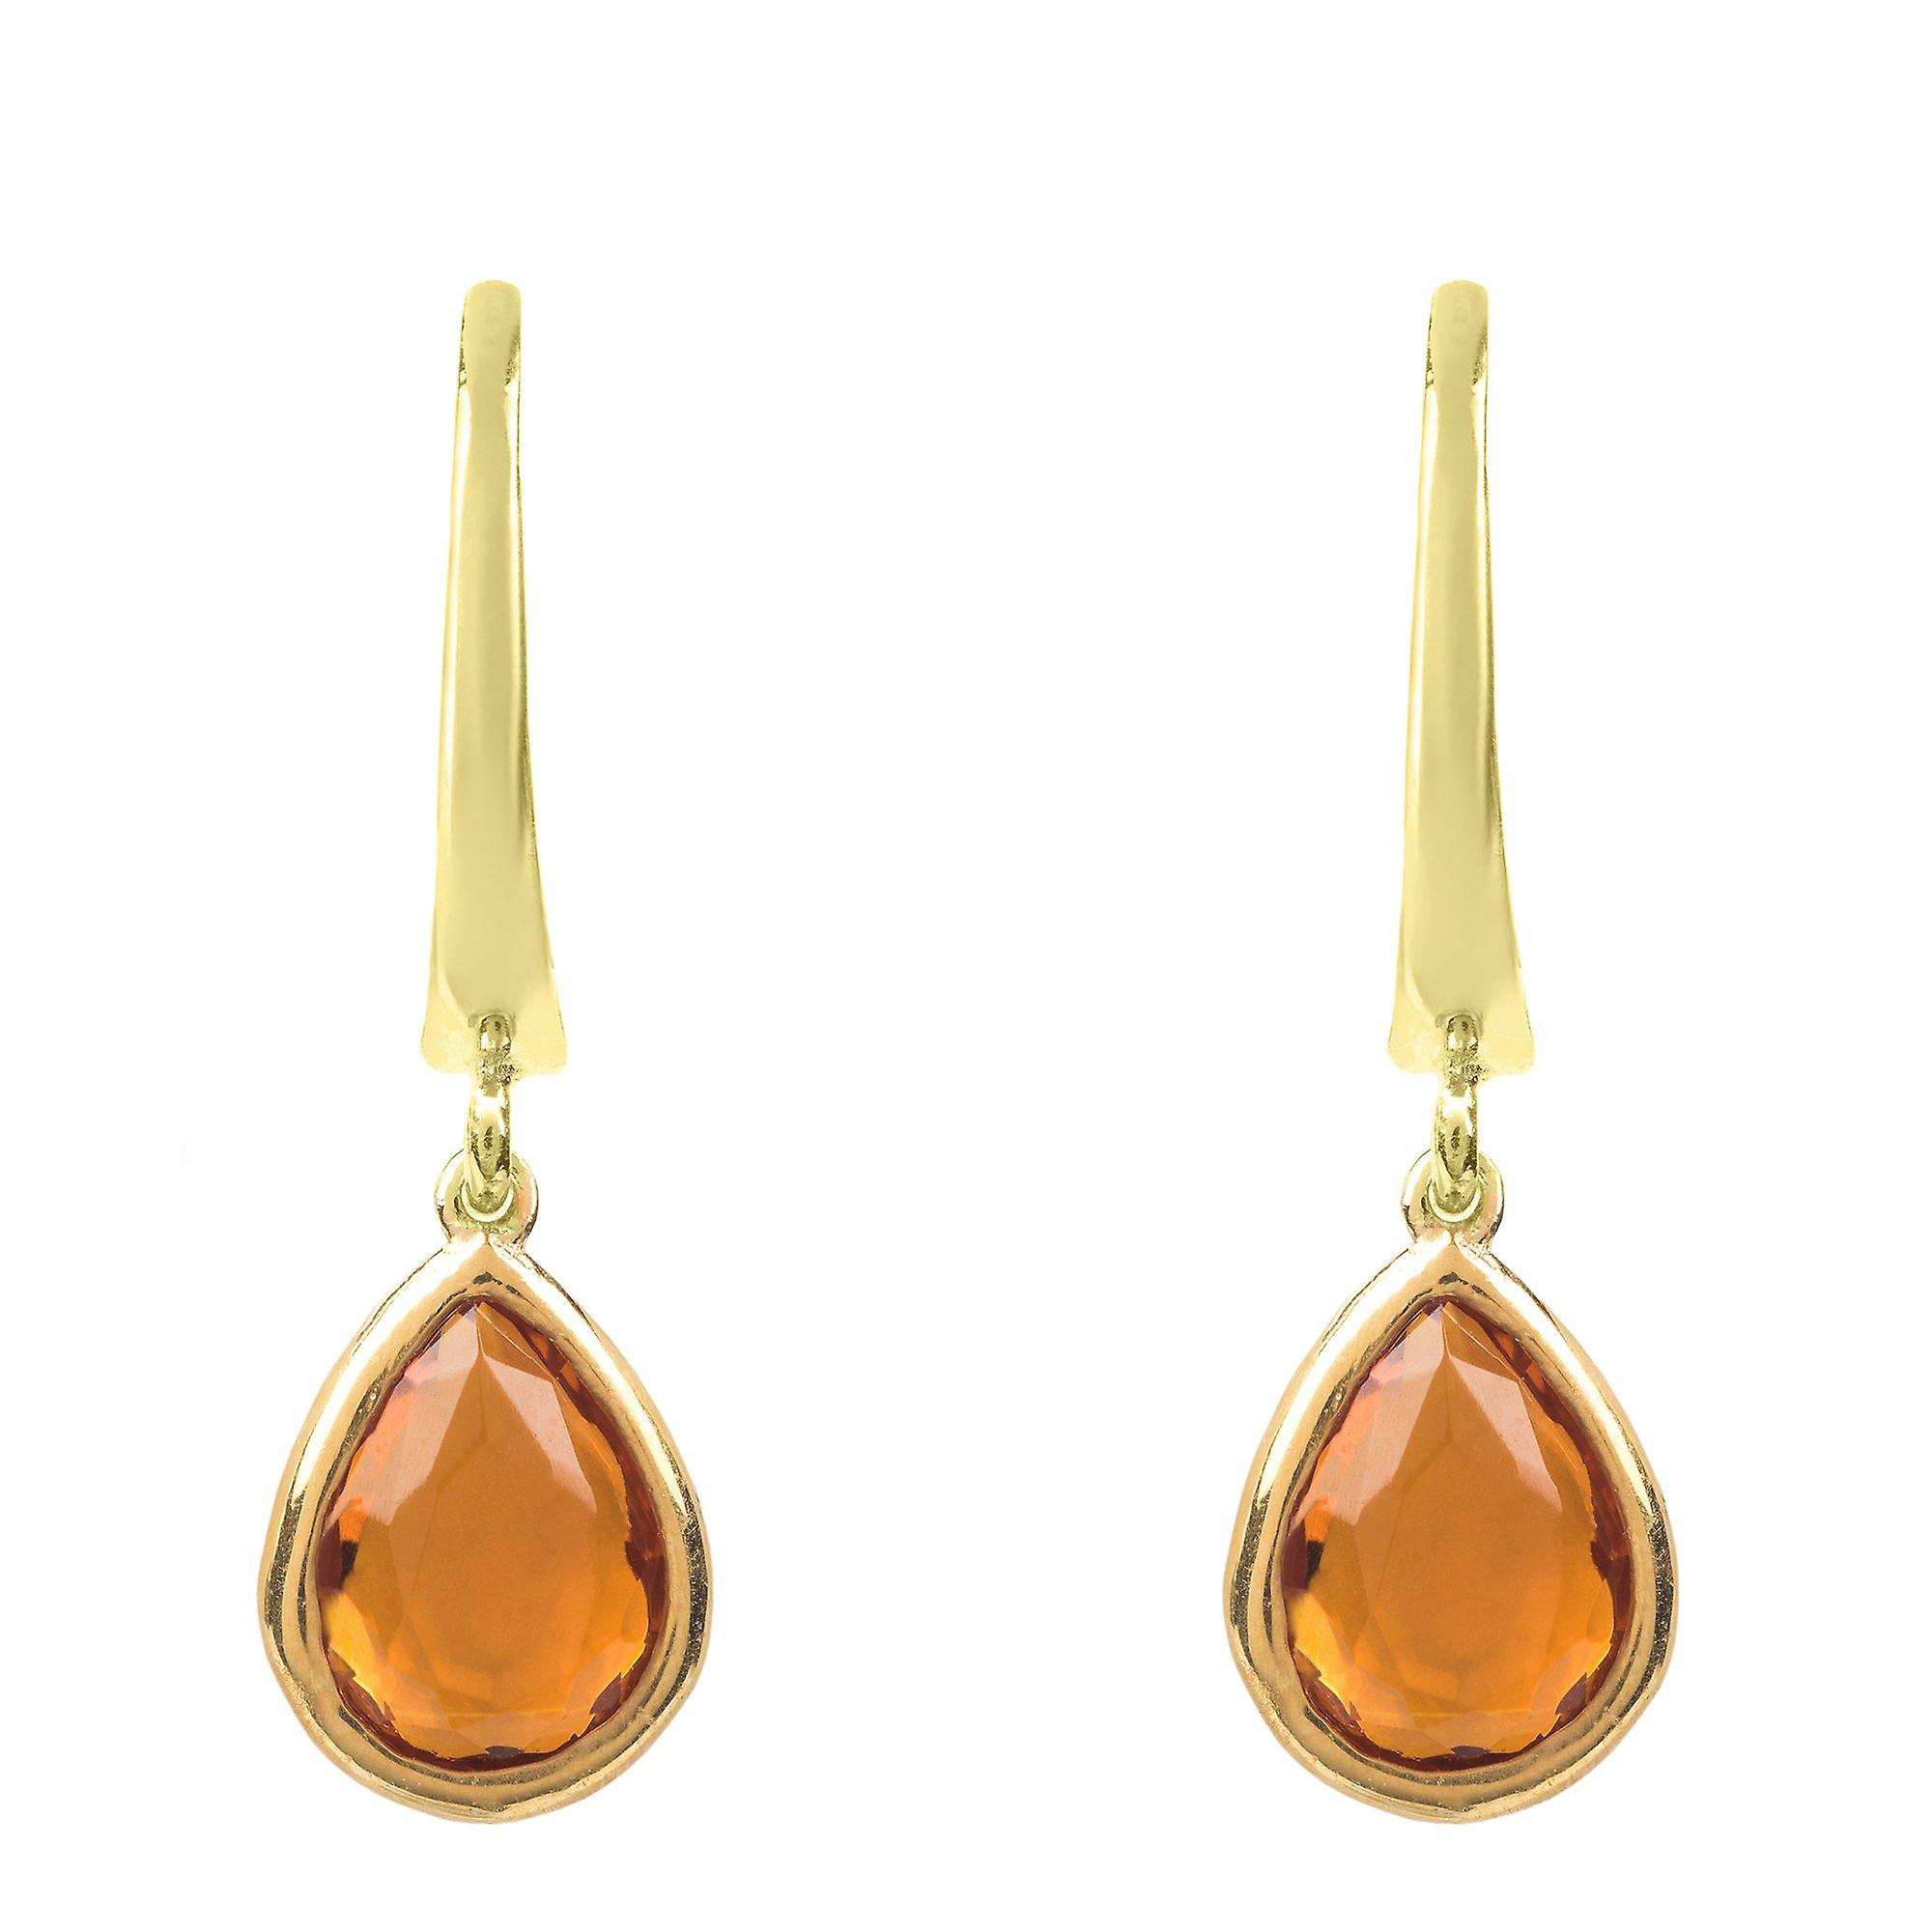 Latelita Gold Earrings Small Gemstone Dangle Drop Yellow Orange Citrine Silver